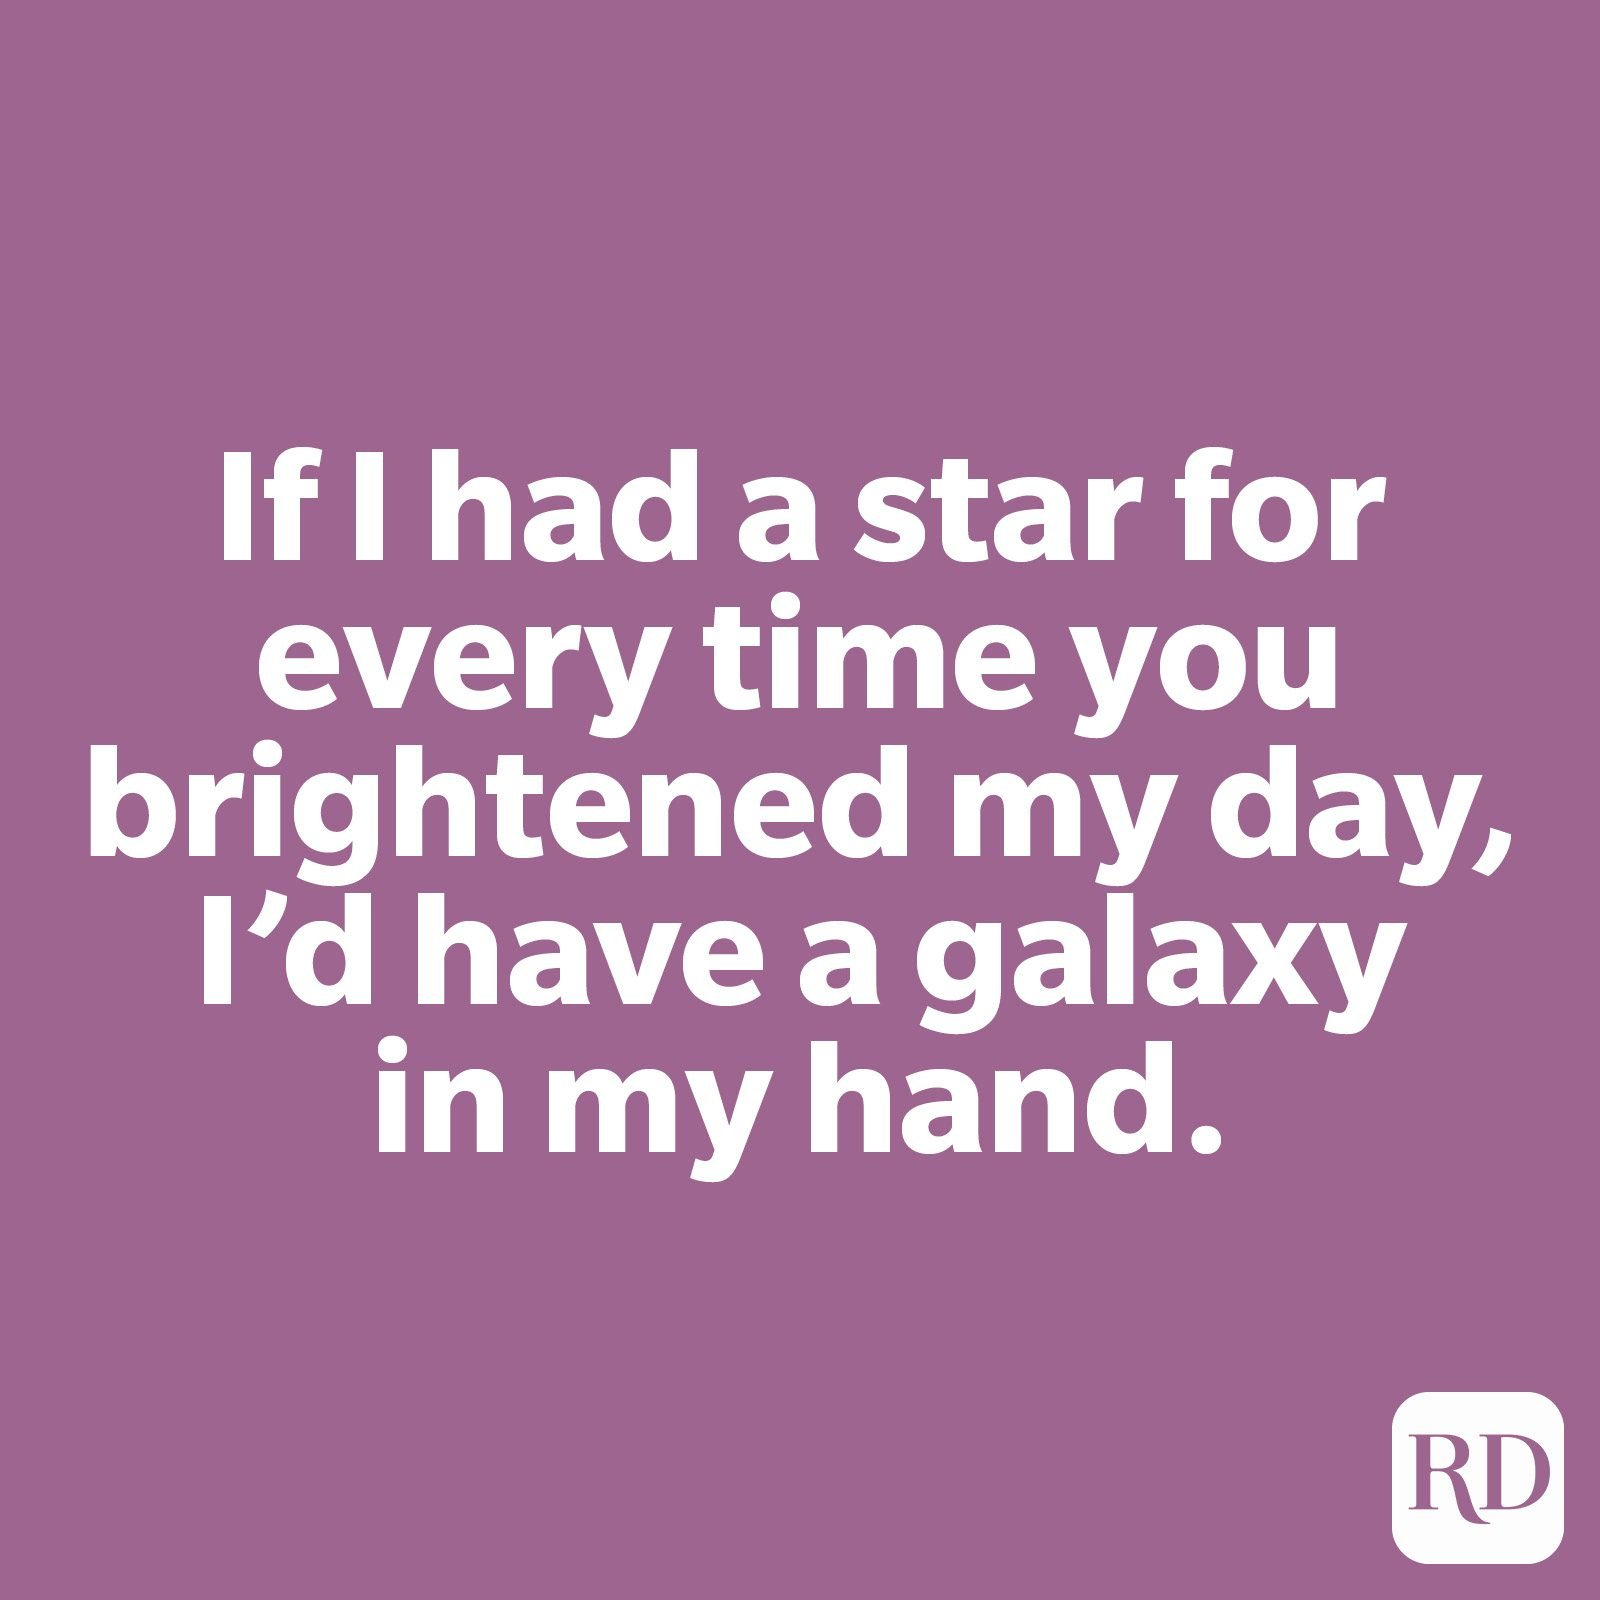 If I had a star for every time you brightened my day, I'd have a galaxy in my hand.